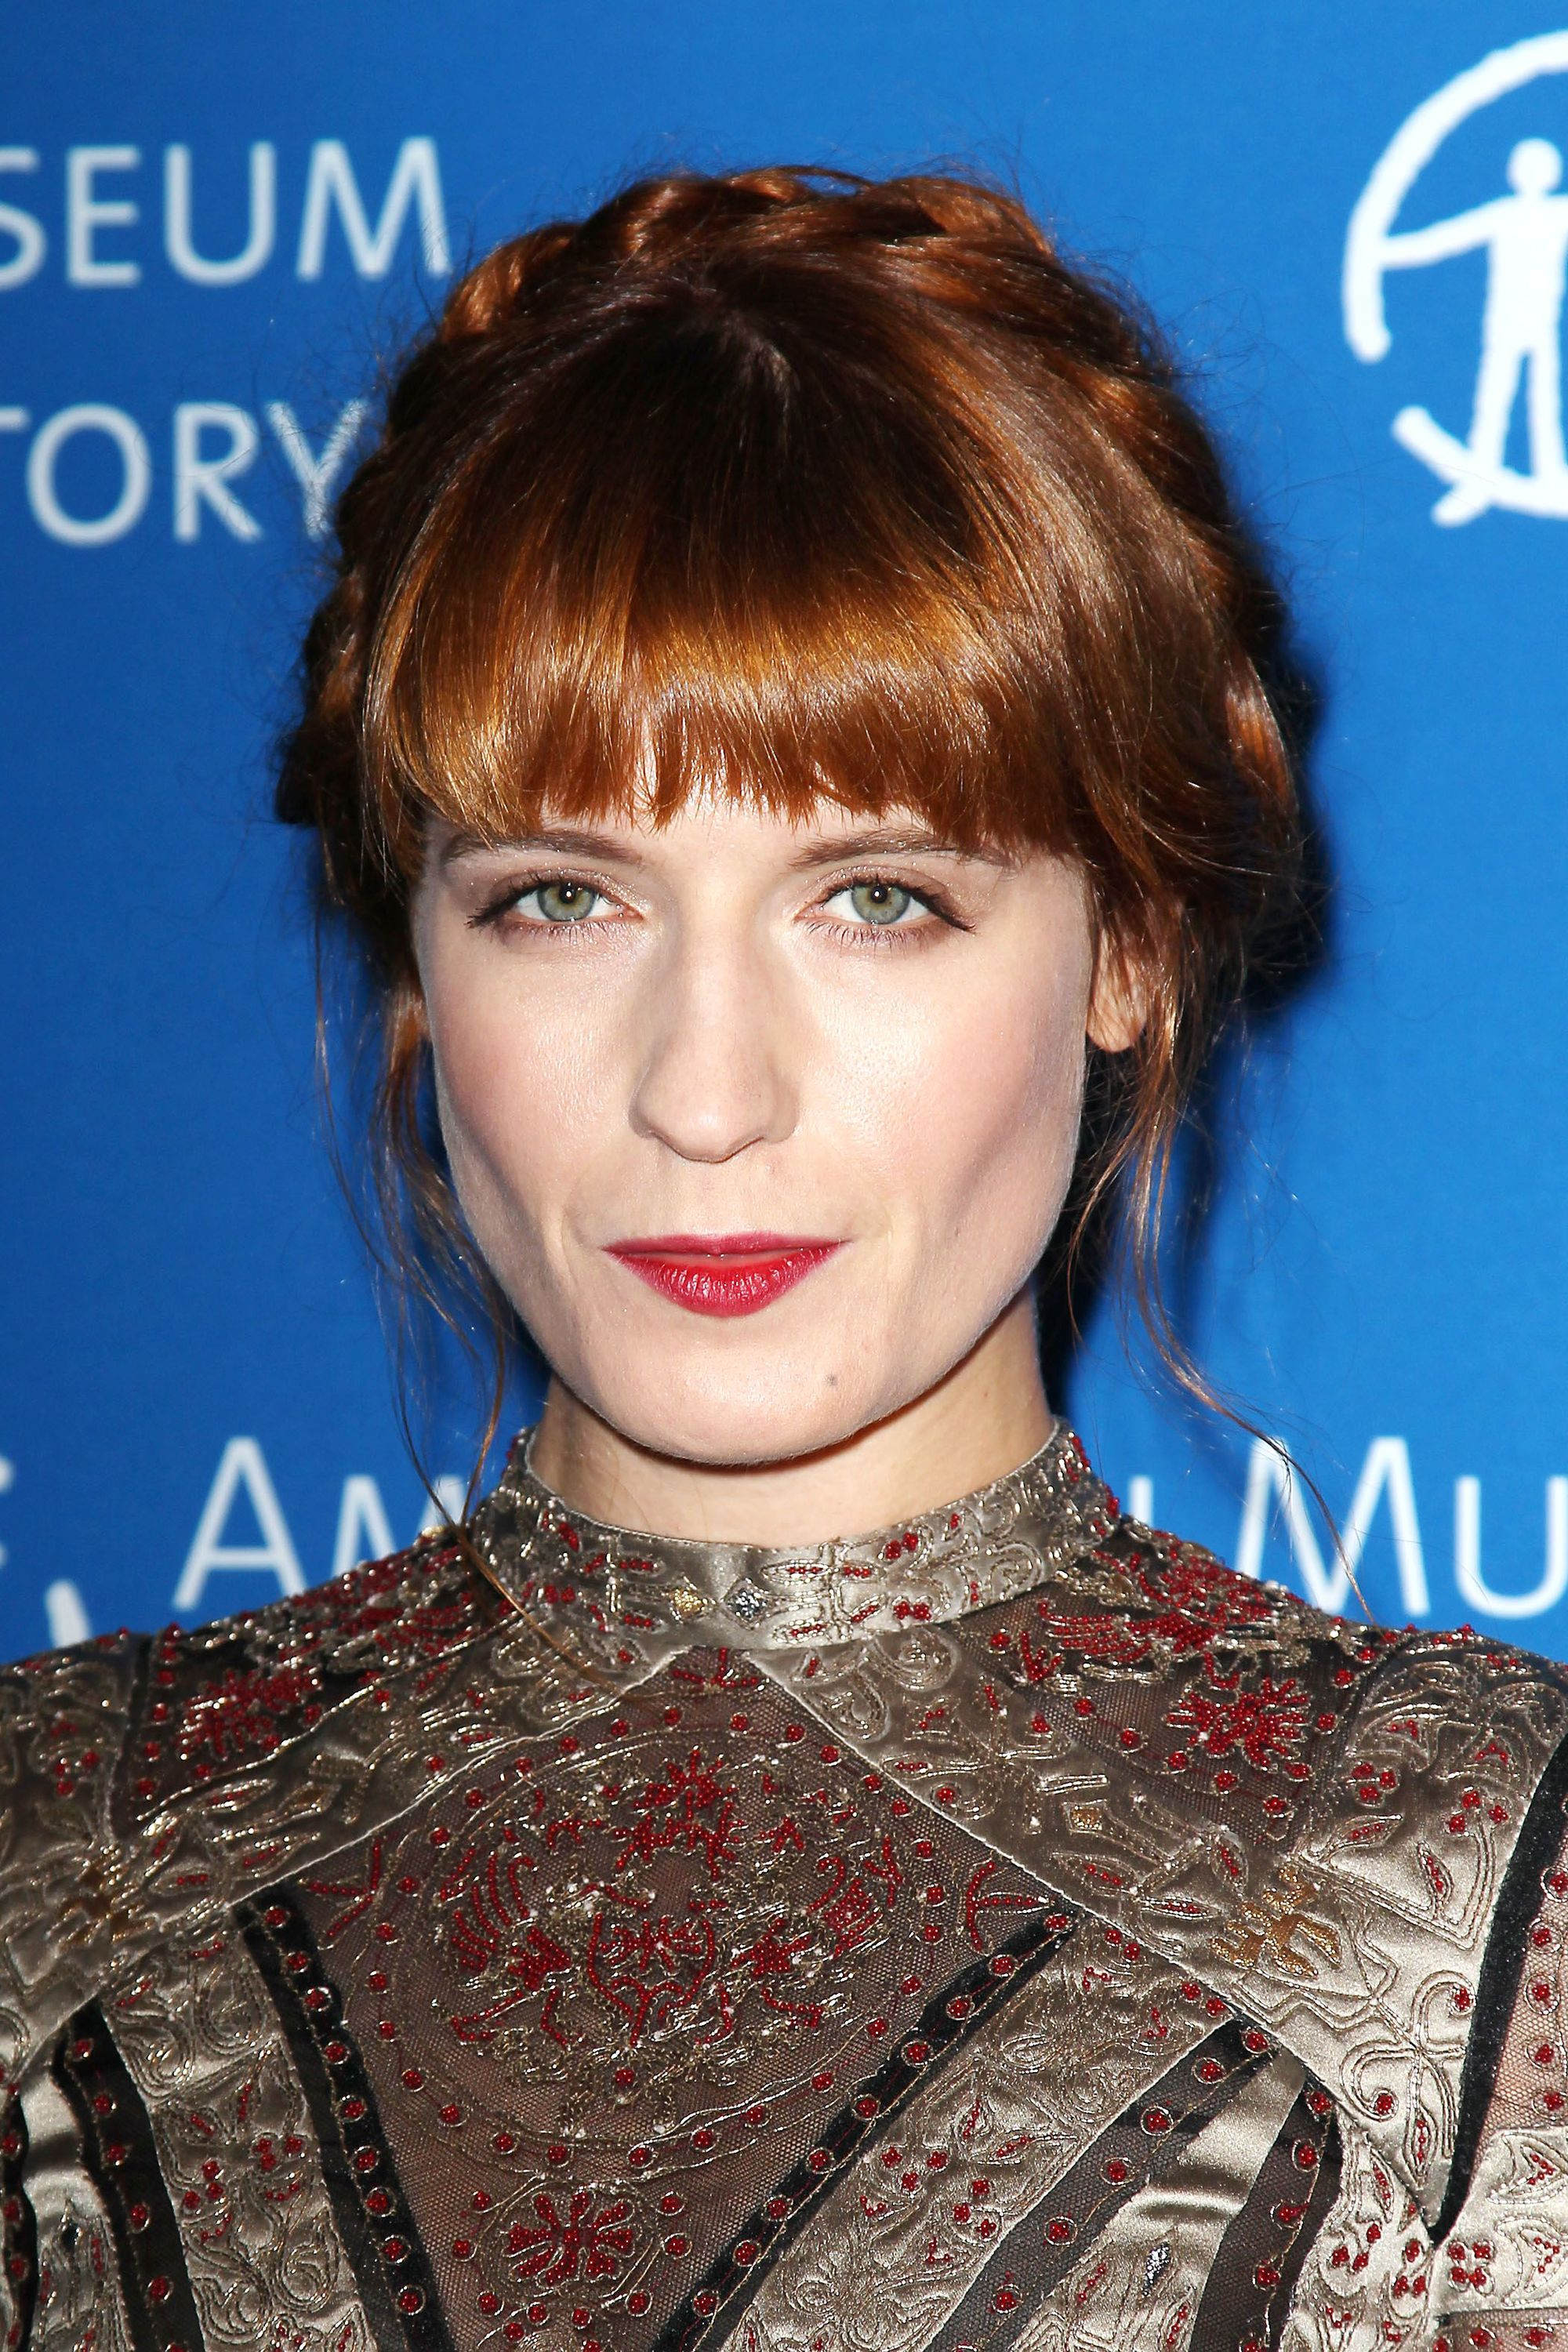 singer florence welch with her auburn hair in a pretty halo braid